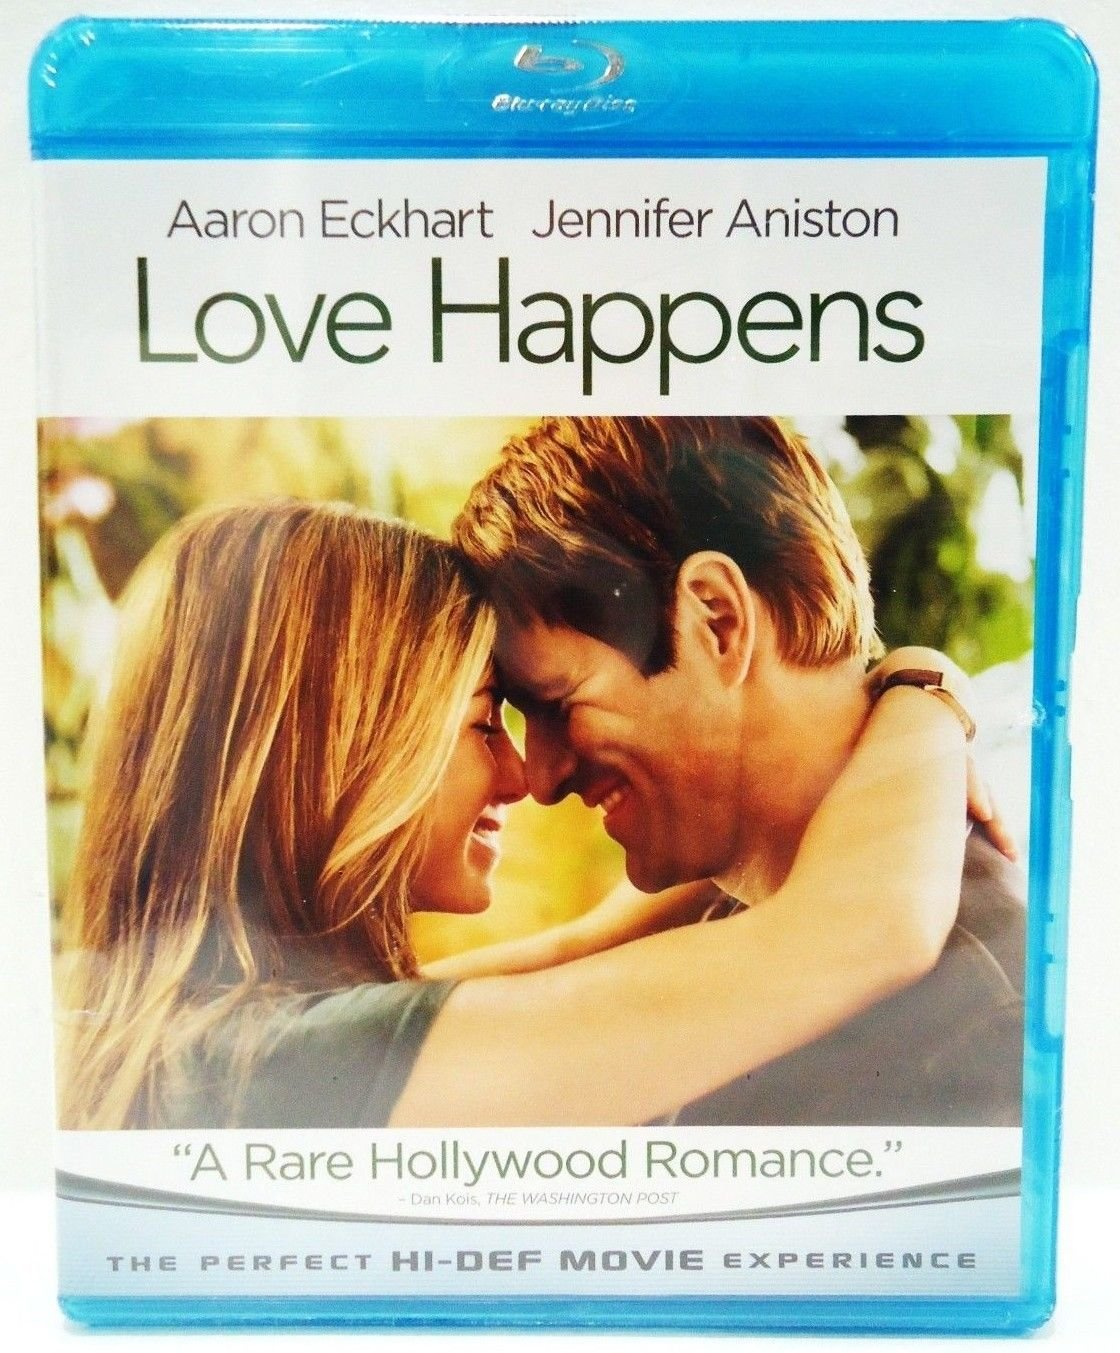 LOVE HAPPENS - BLU-RAY - DVD - JENNIFER ANISTON - BRAND NEW - ROMANTIC - MOVIE